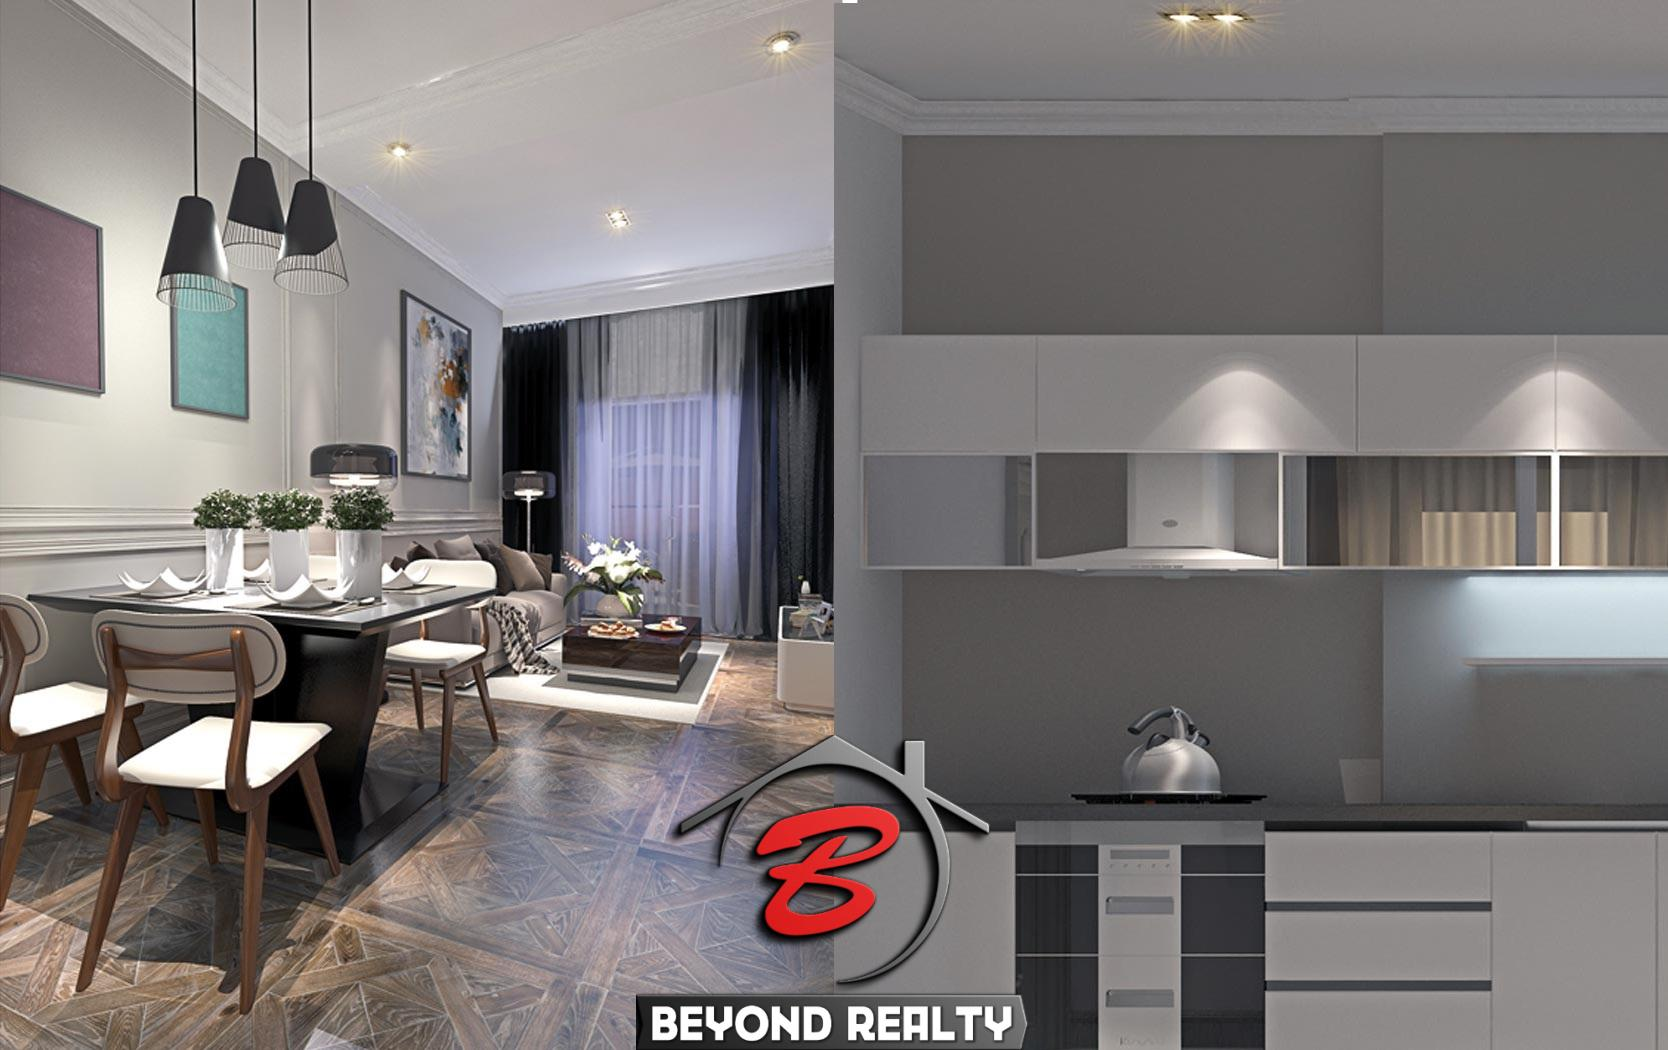 the kitchen and the living room of the 1 bedroom condo unit for sale at SeaGate Suite in Sangkat 3 Sihanoukville